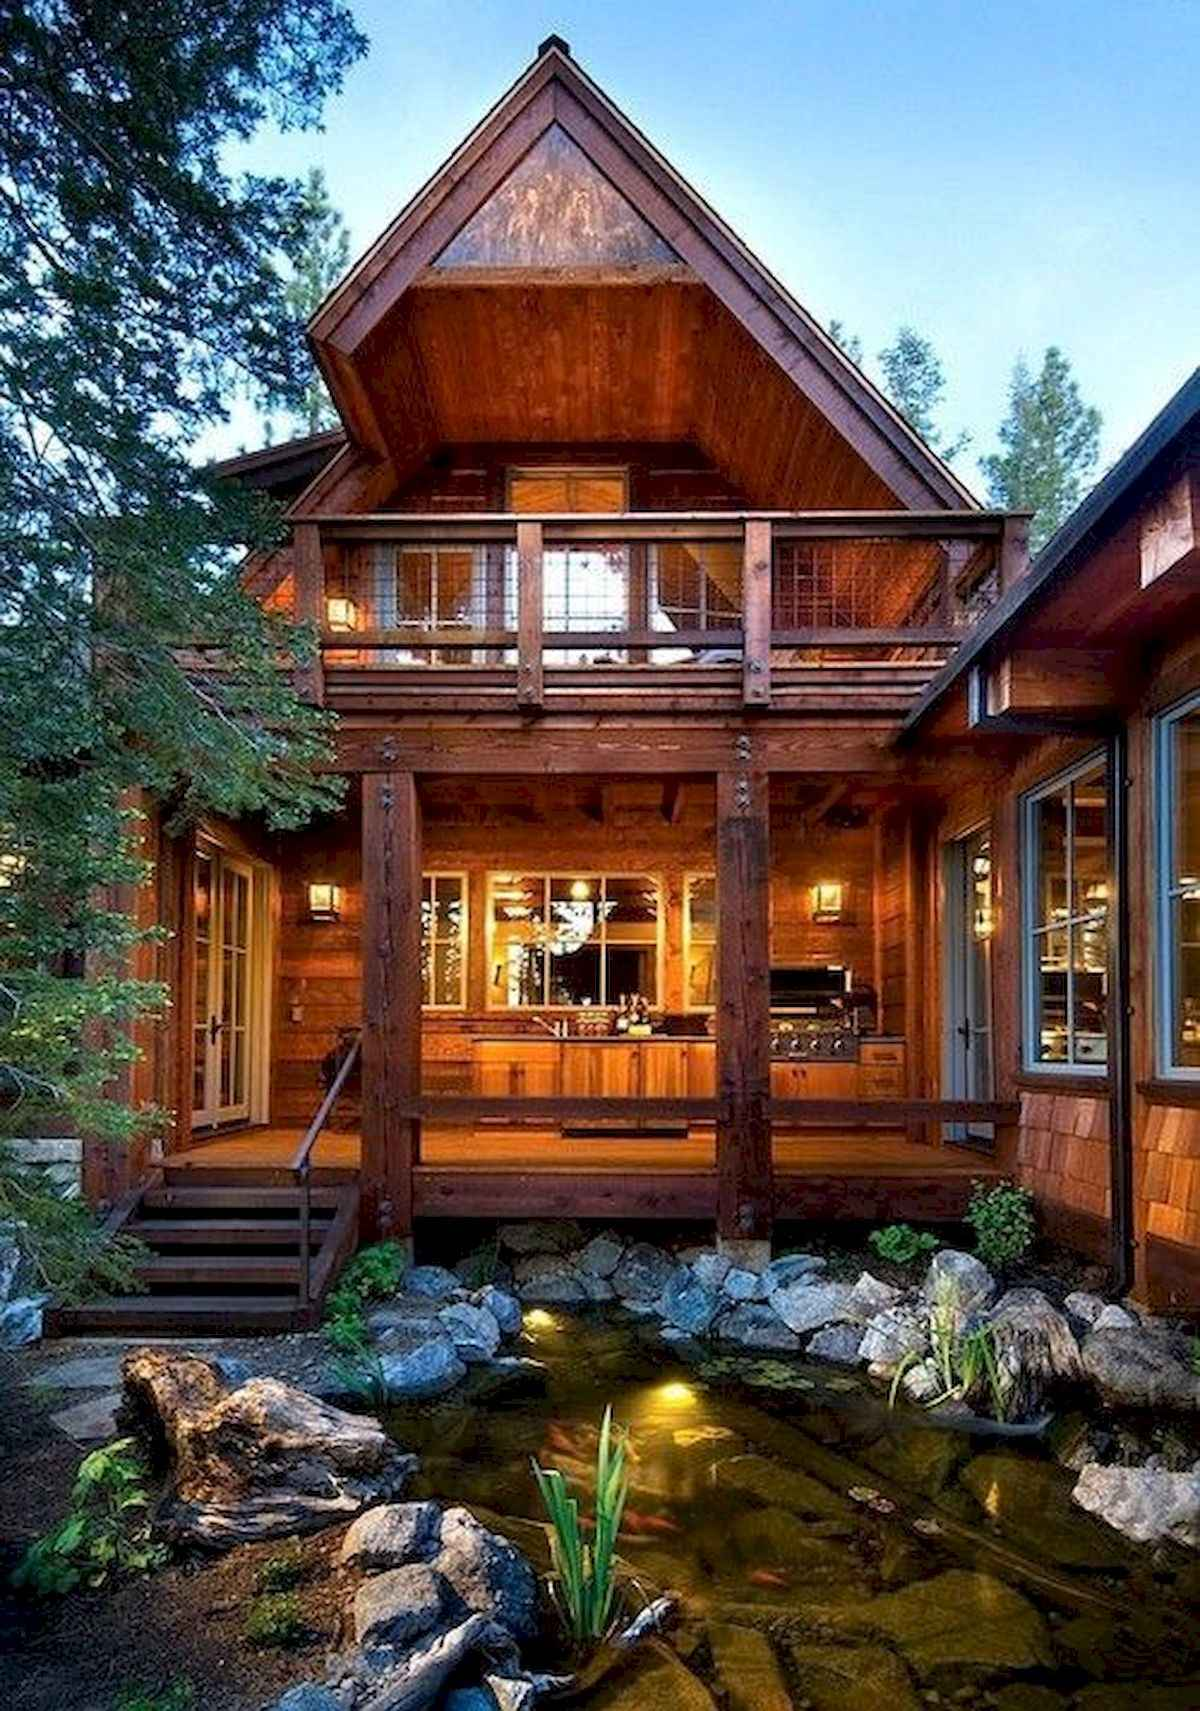 60 Rustic Log Cabin Homes Plans Design Ideas And Remodel (11)